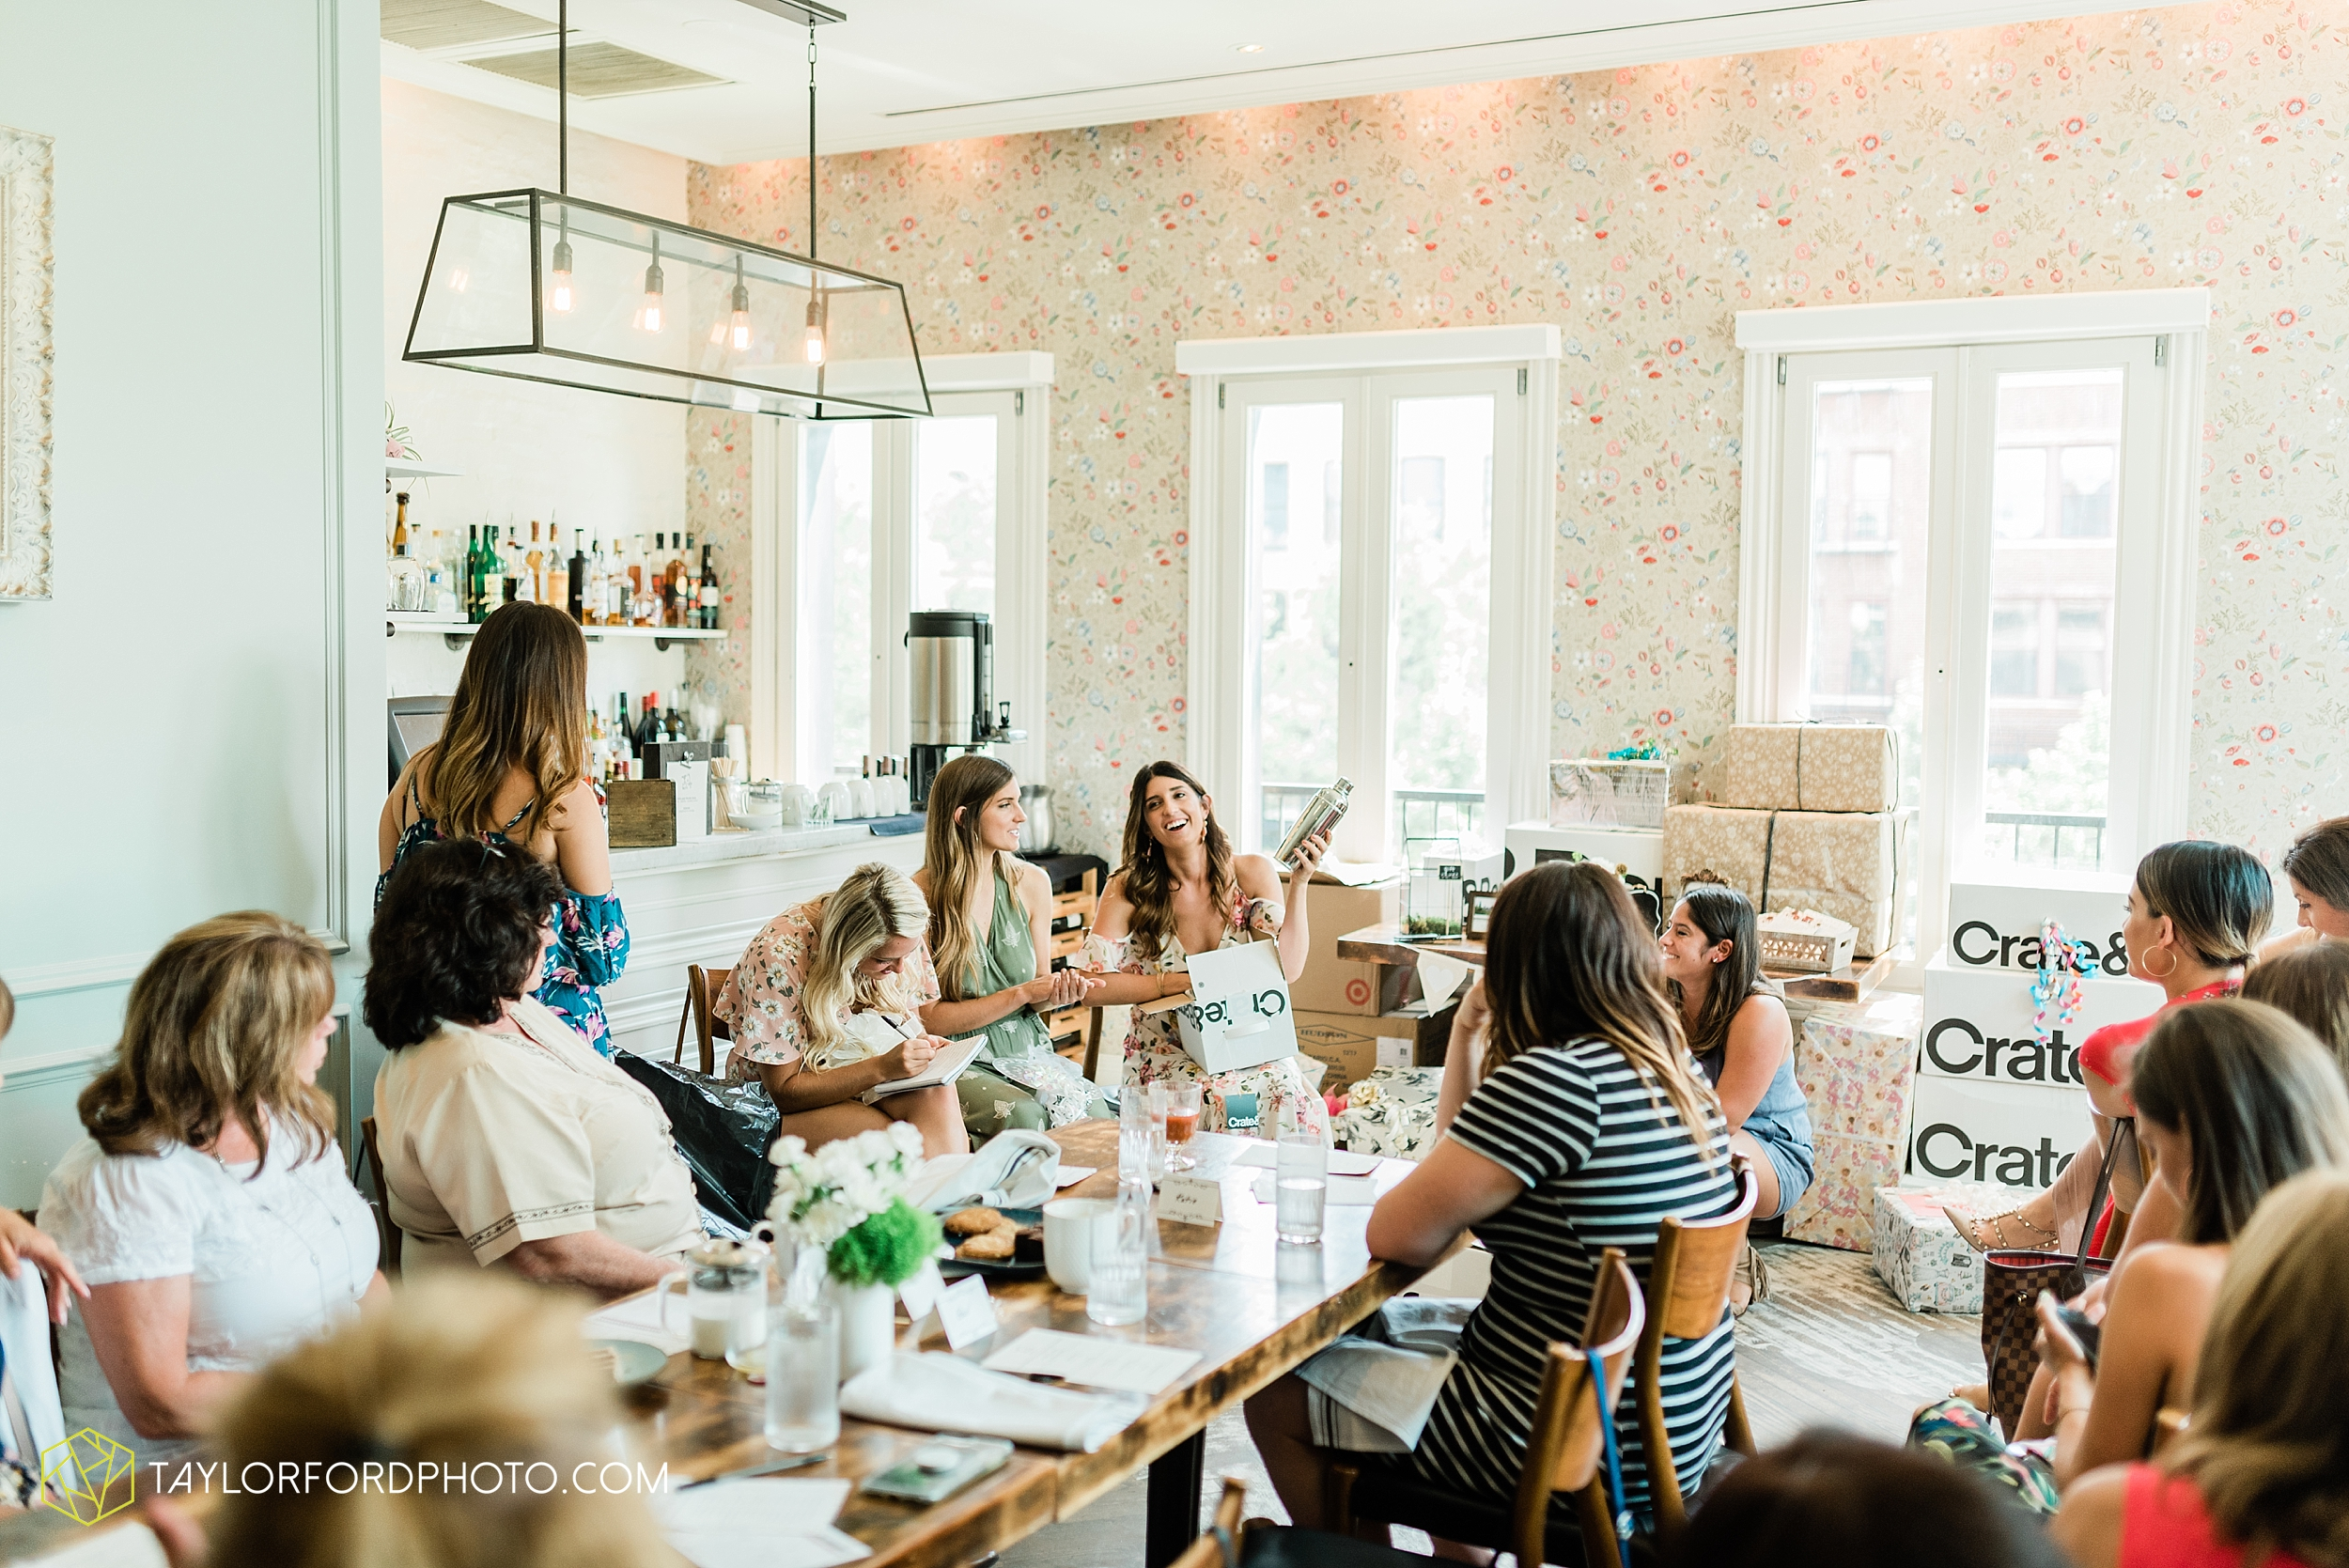 chicago-illinois-bridal-shower-little-goat-diner-west-loop-wedding-photographer-taylor-ford-photographer_8856.jpg